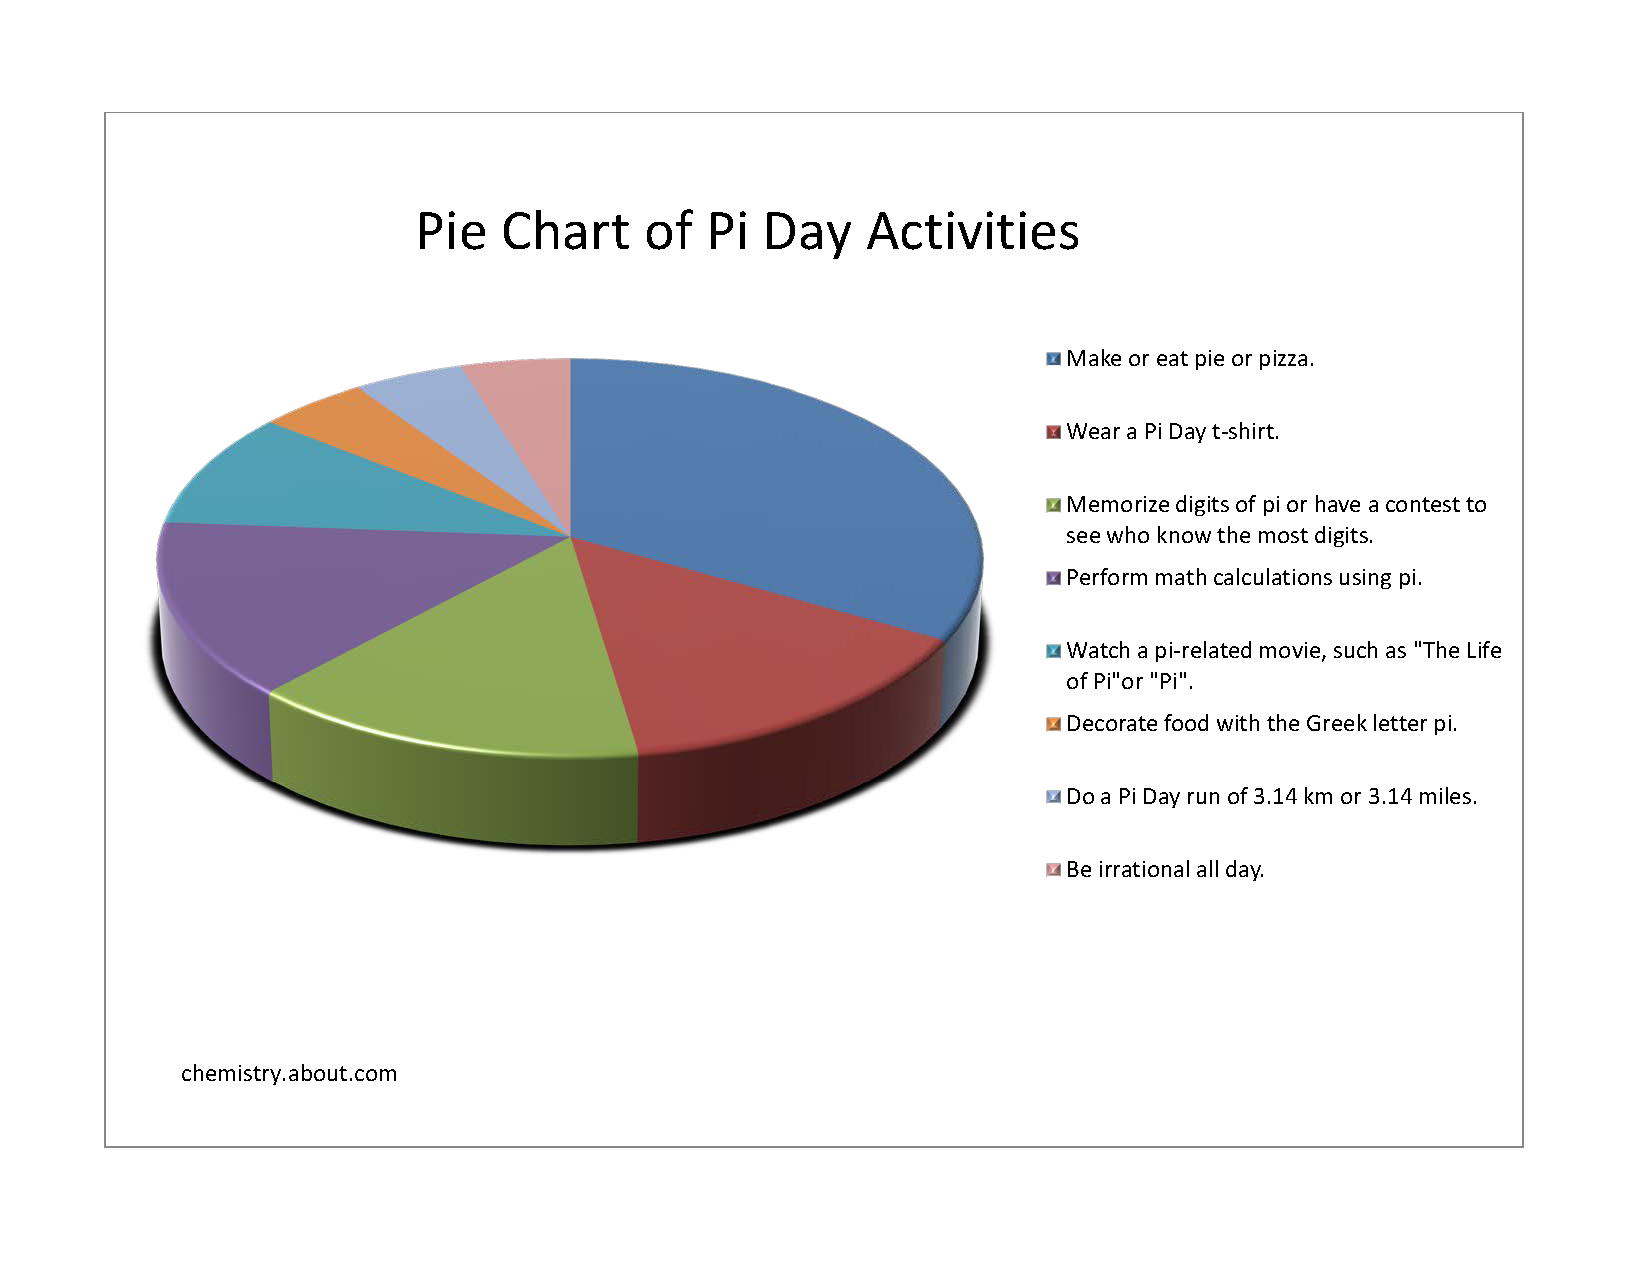 Pi day activities maryland math madness a pi day pie chart of activities from here nvjuhfo Choice Image